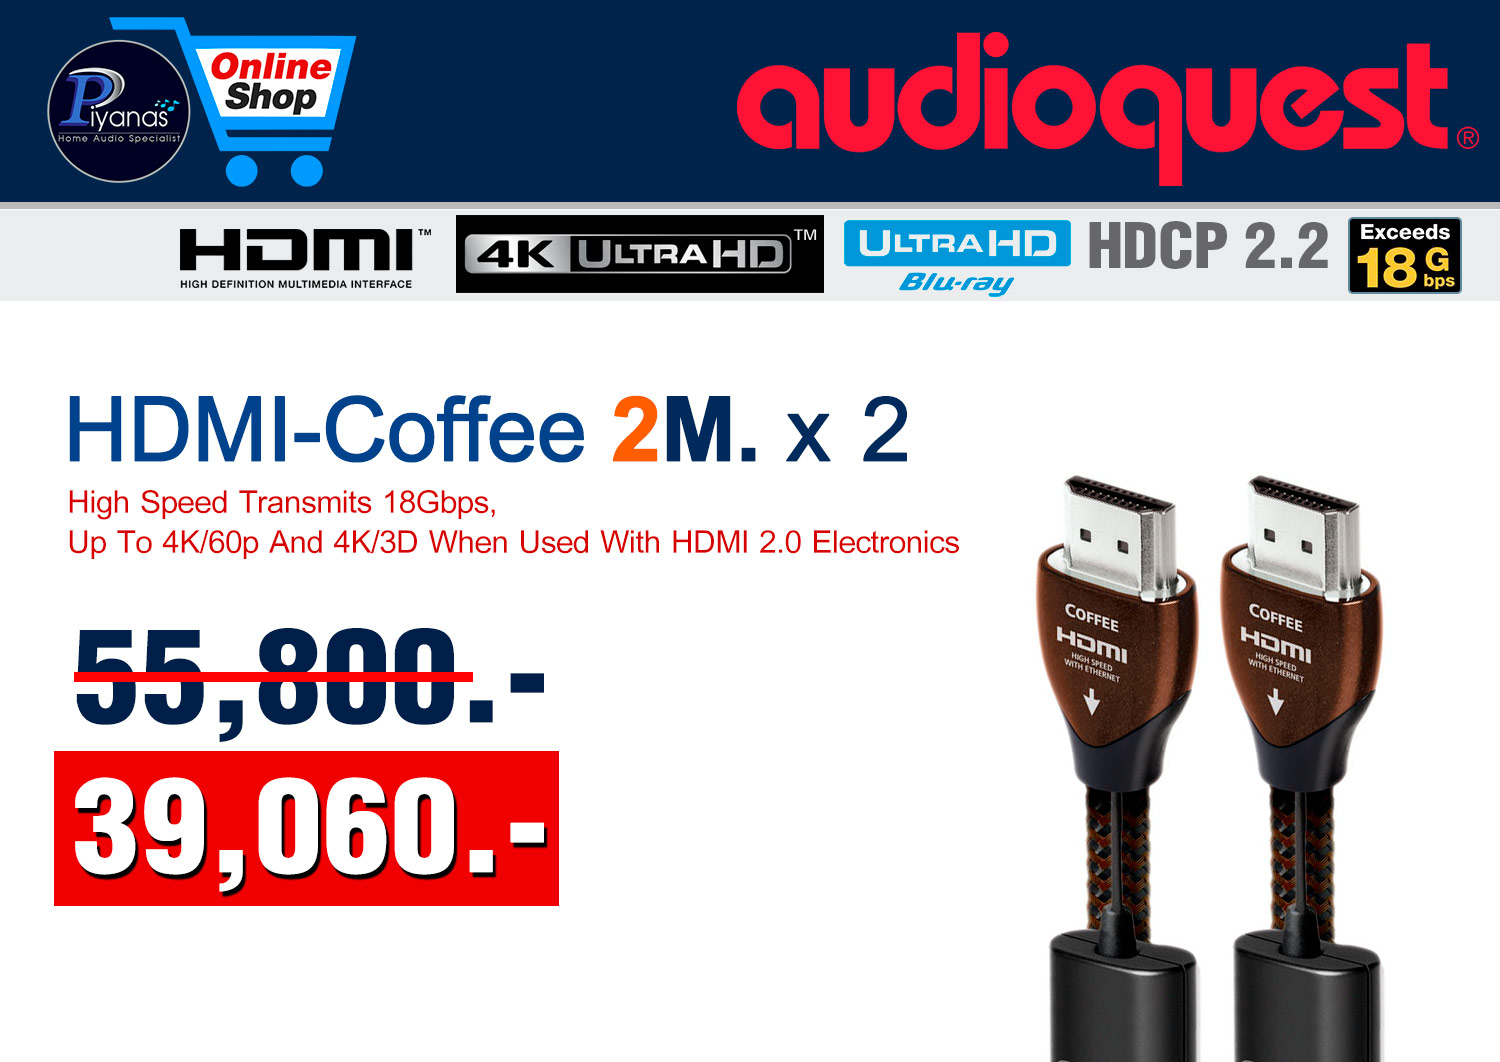 HDMI COFFEE 2M. x2